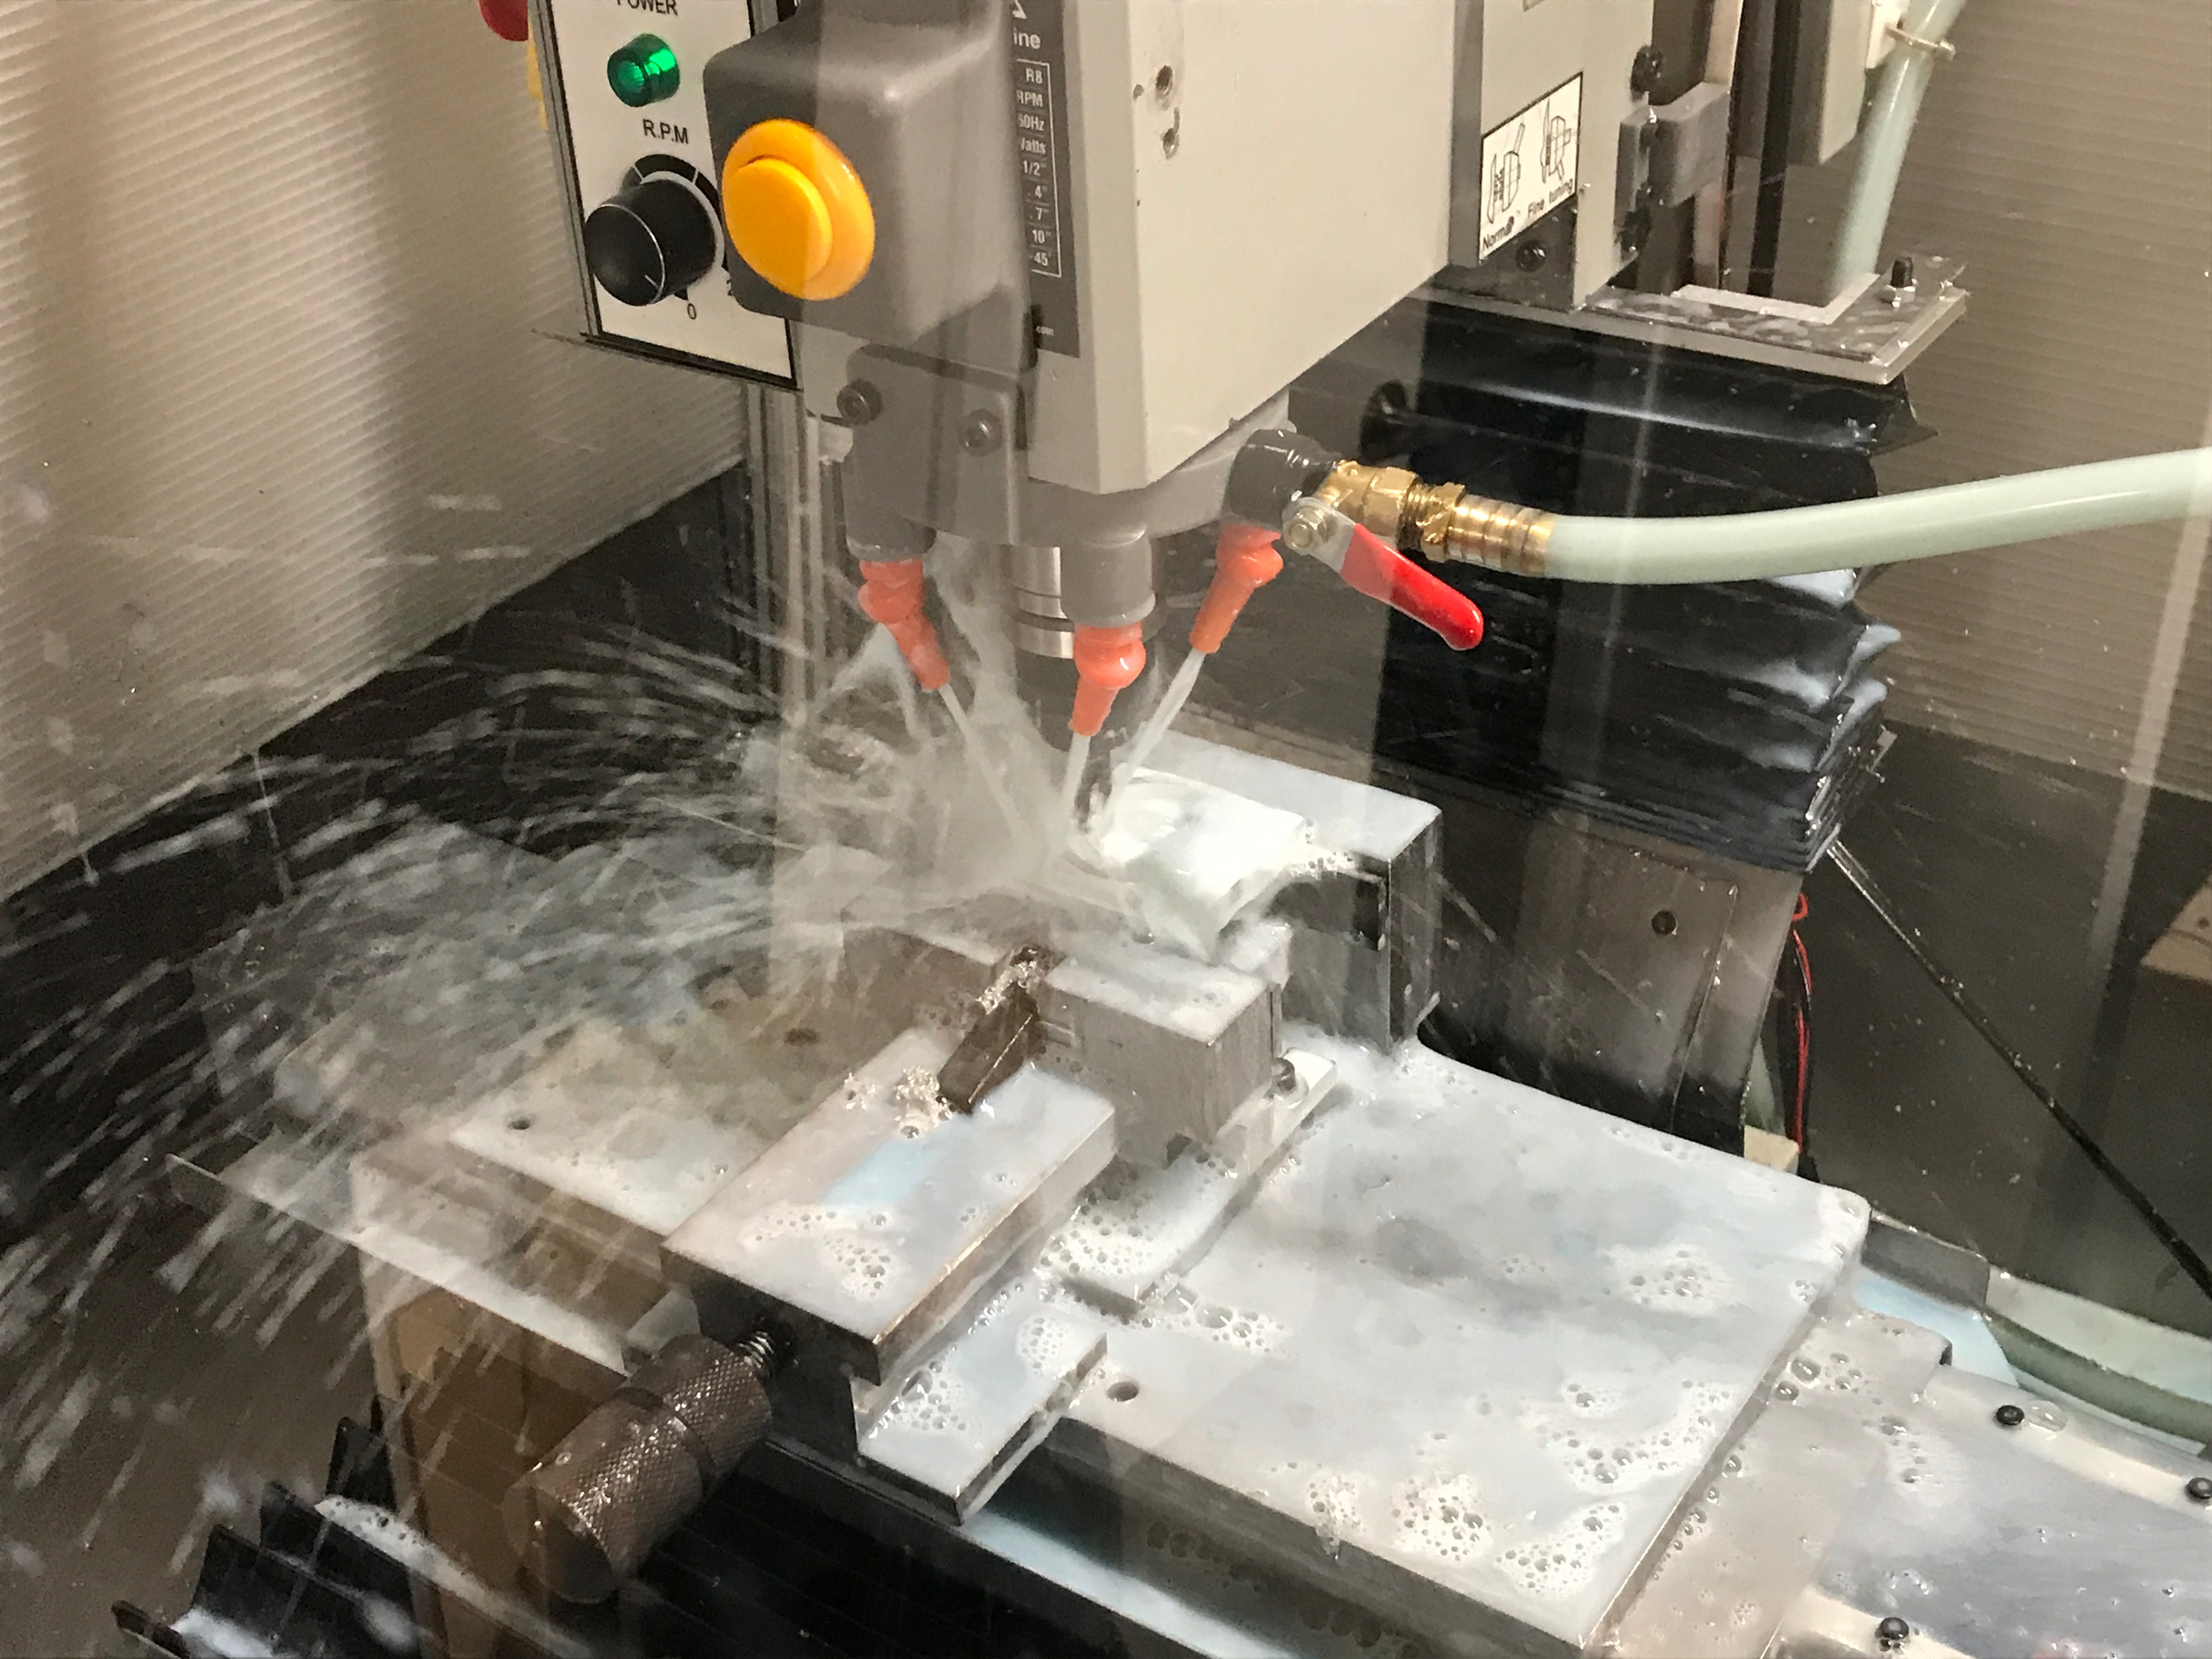 Coolant while milling